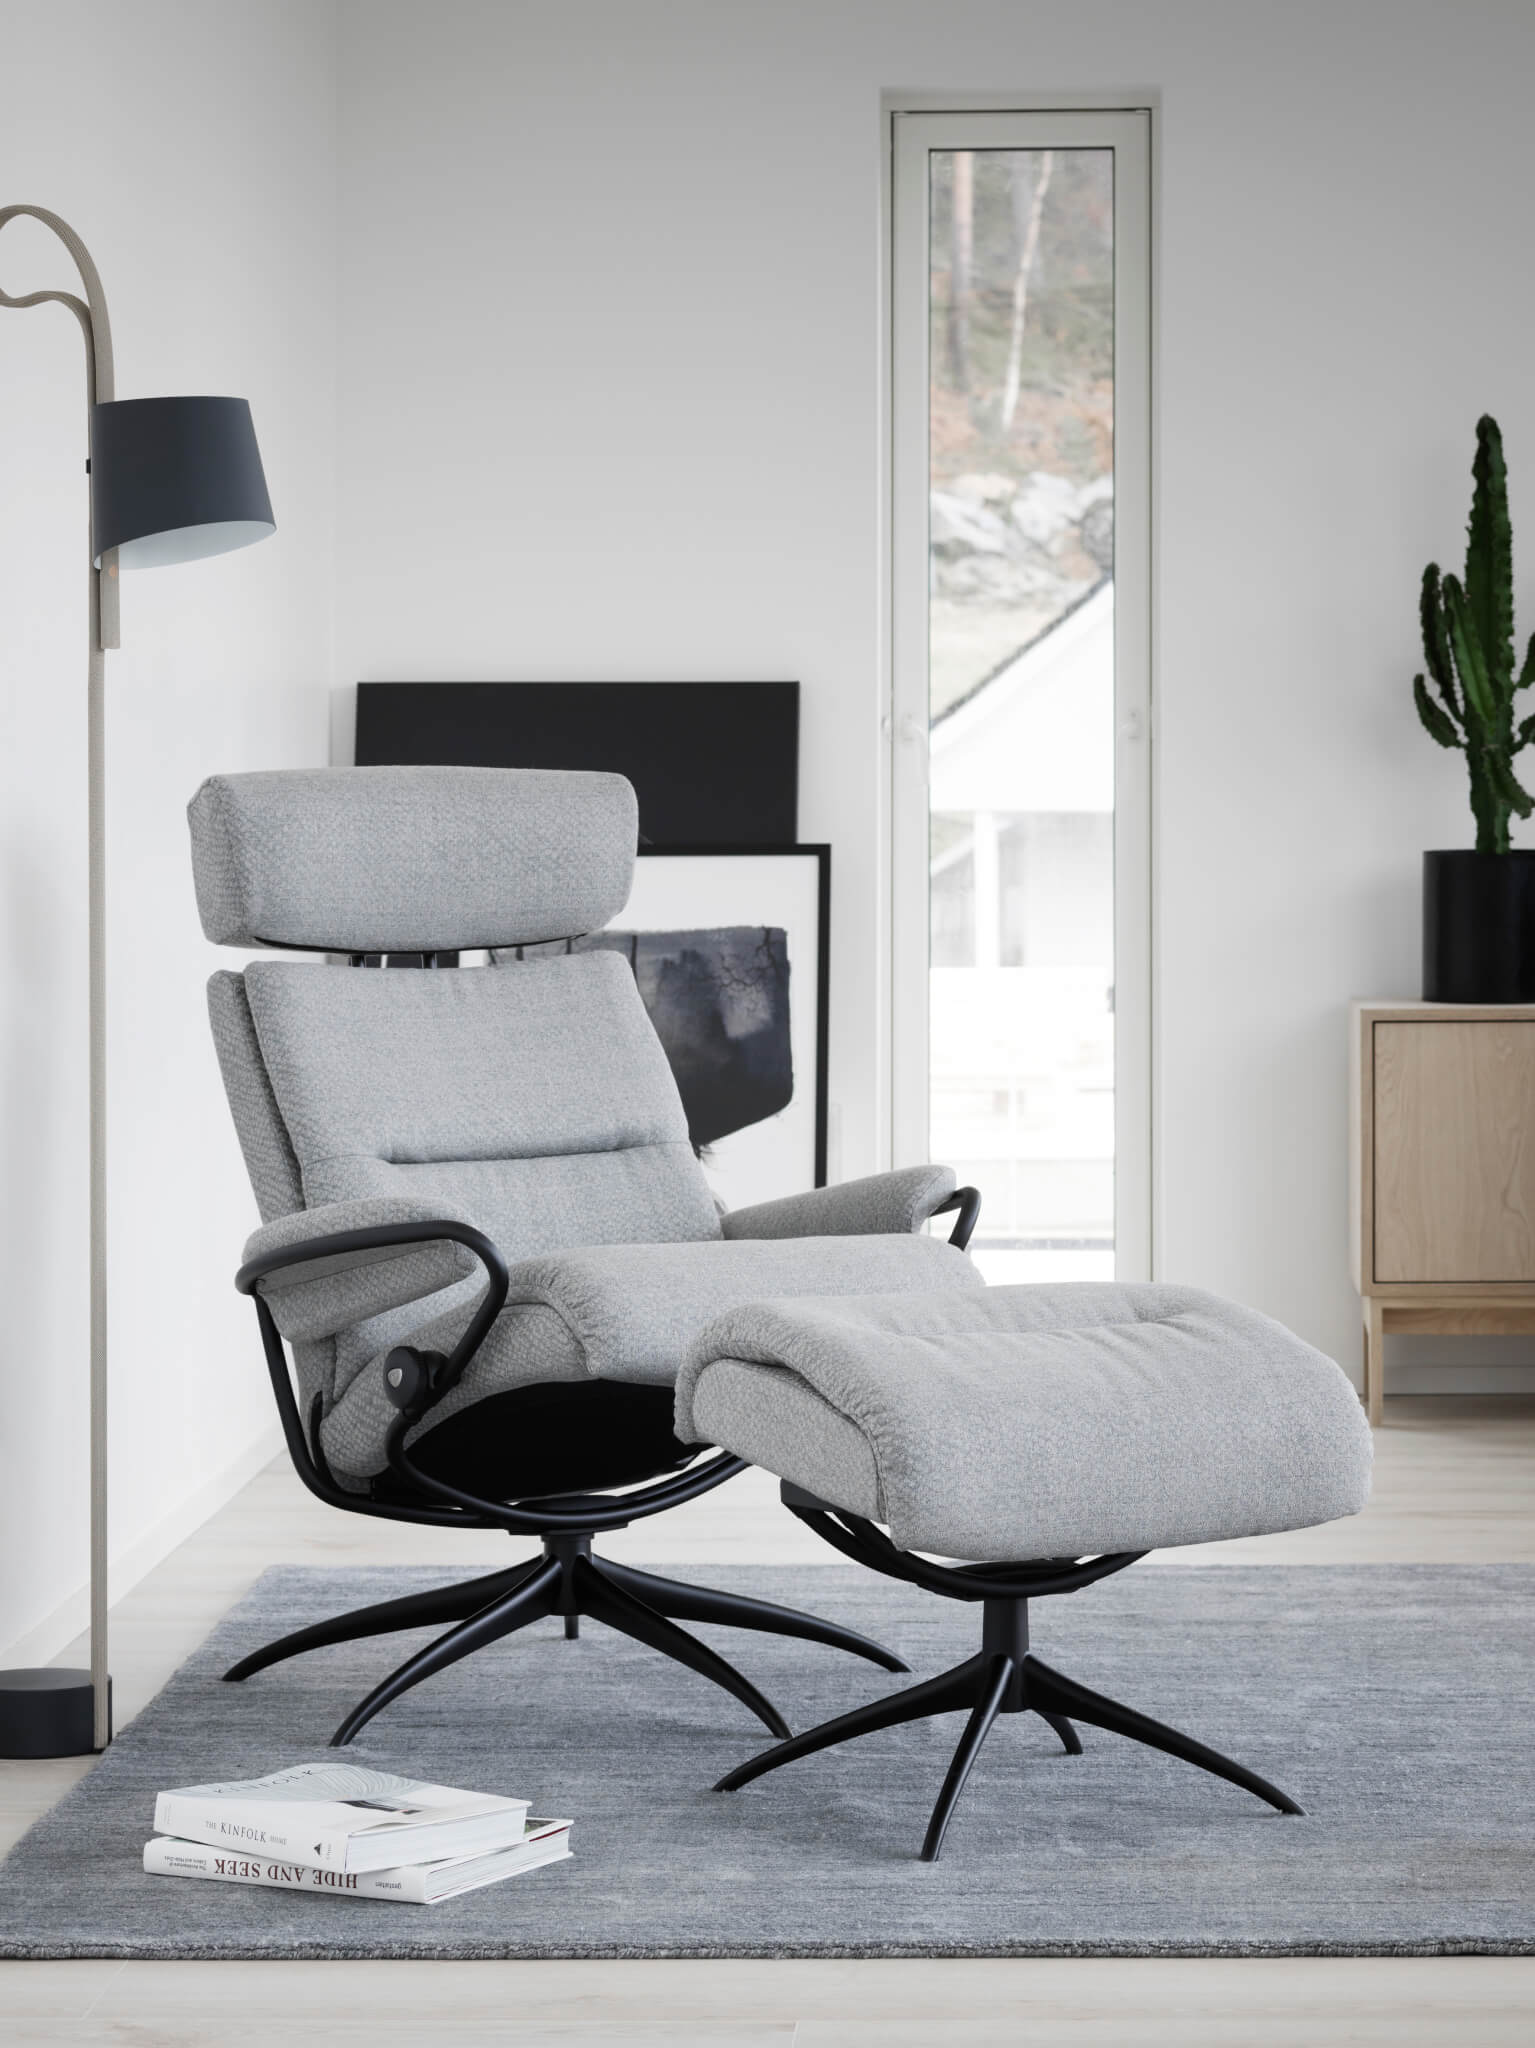 Stressless_Tokyo_Low_with headrest silva moon grey